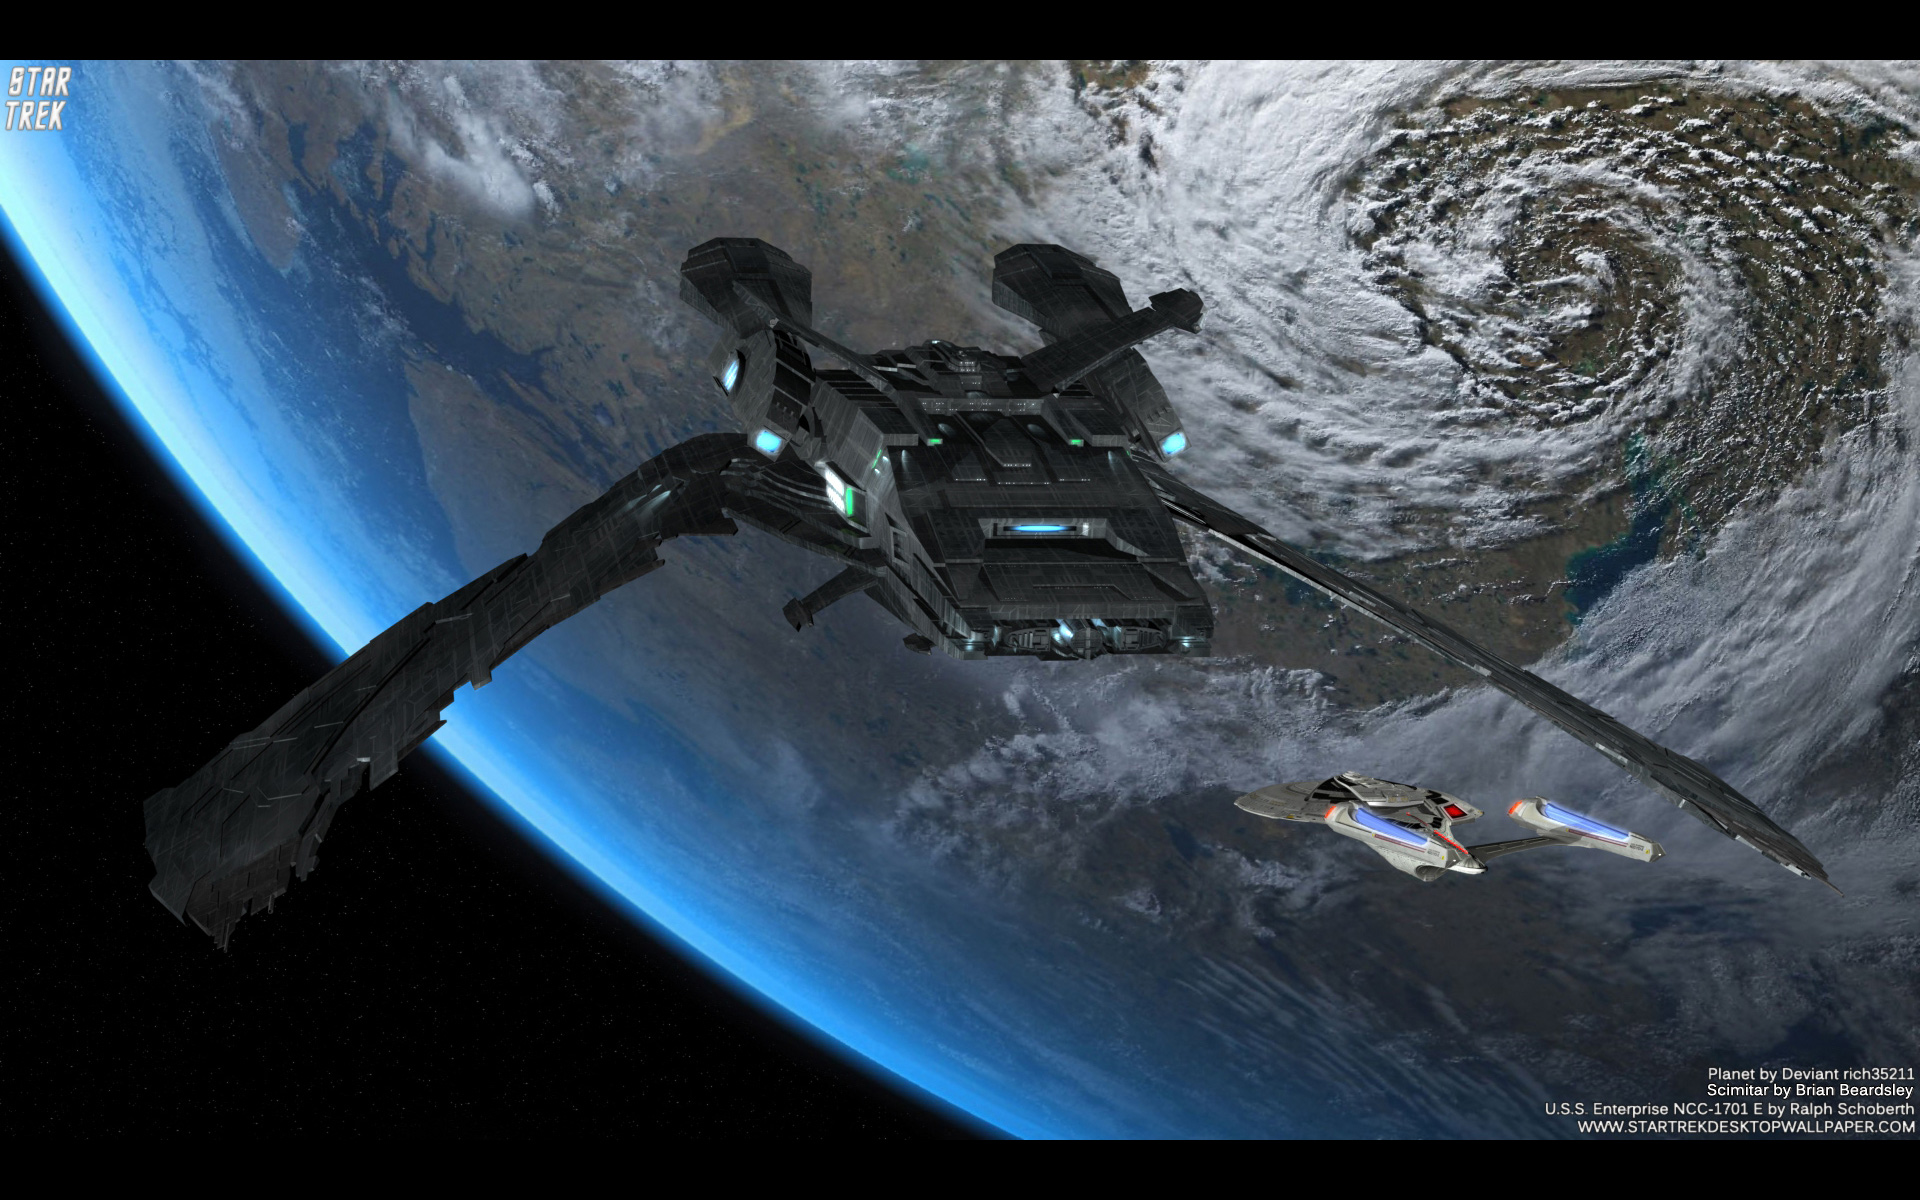 Star Trek Live Wallpaper Download 1920x1200